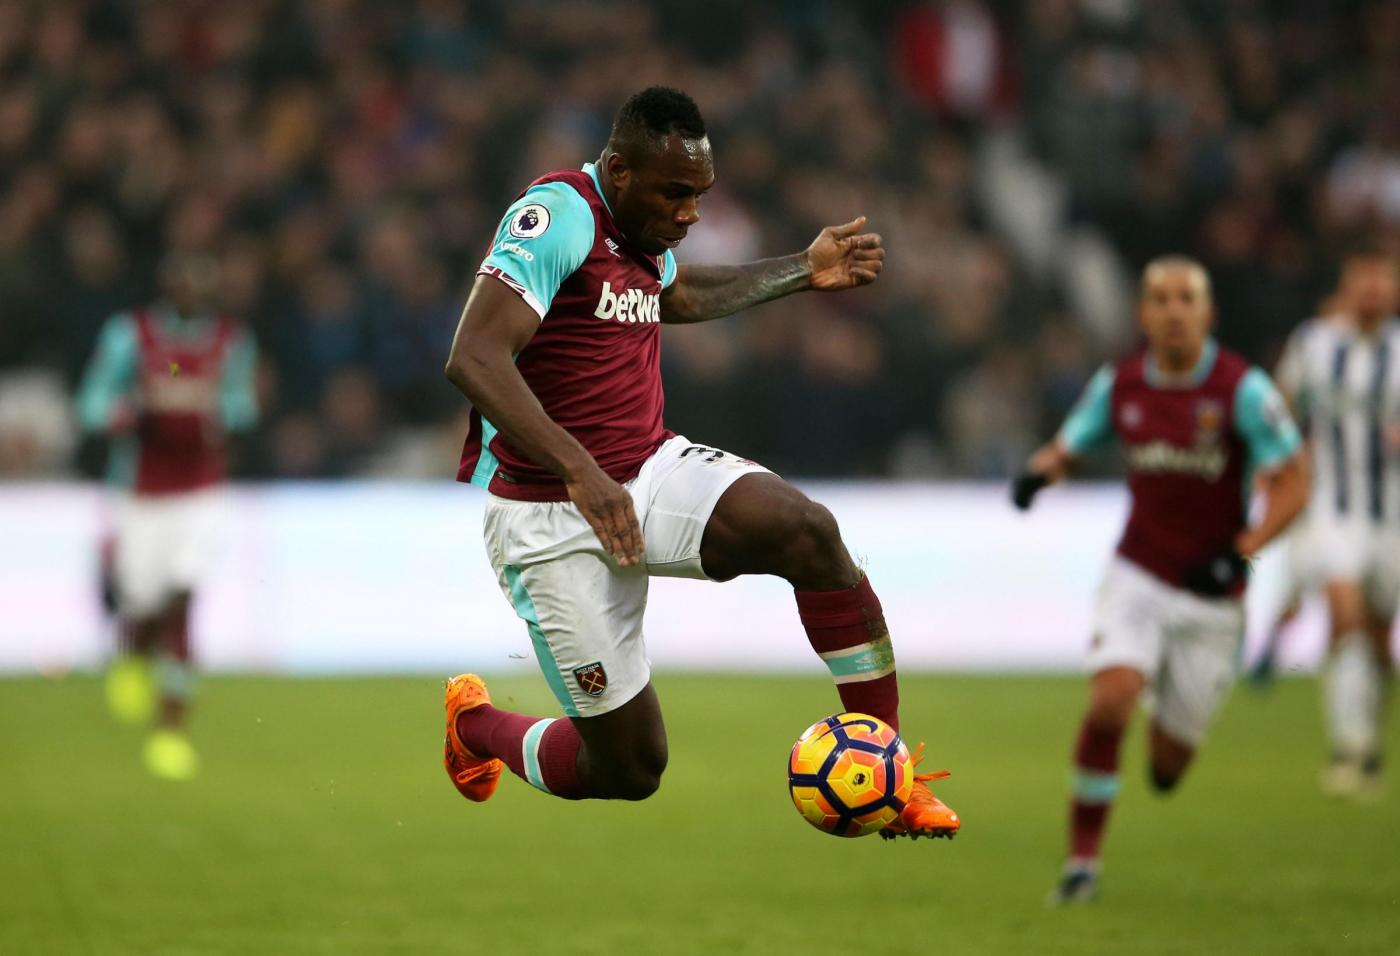 West Ham-Crystal Palace 30 gennaio, analisi e pronostico Premier League giornata 25